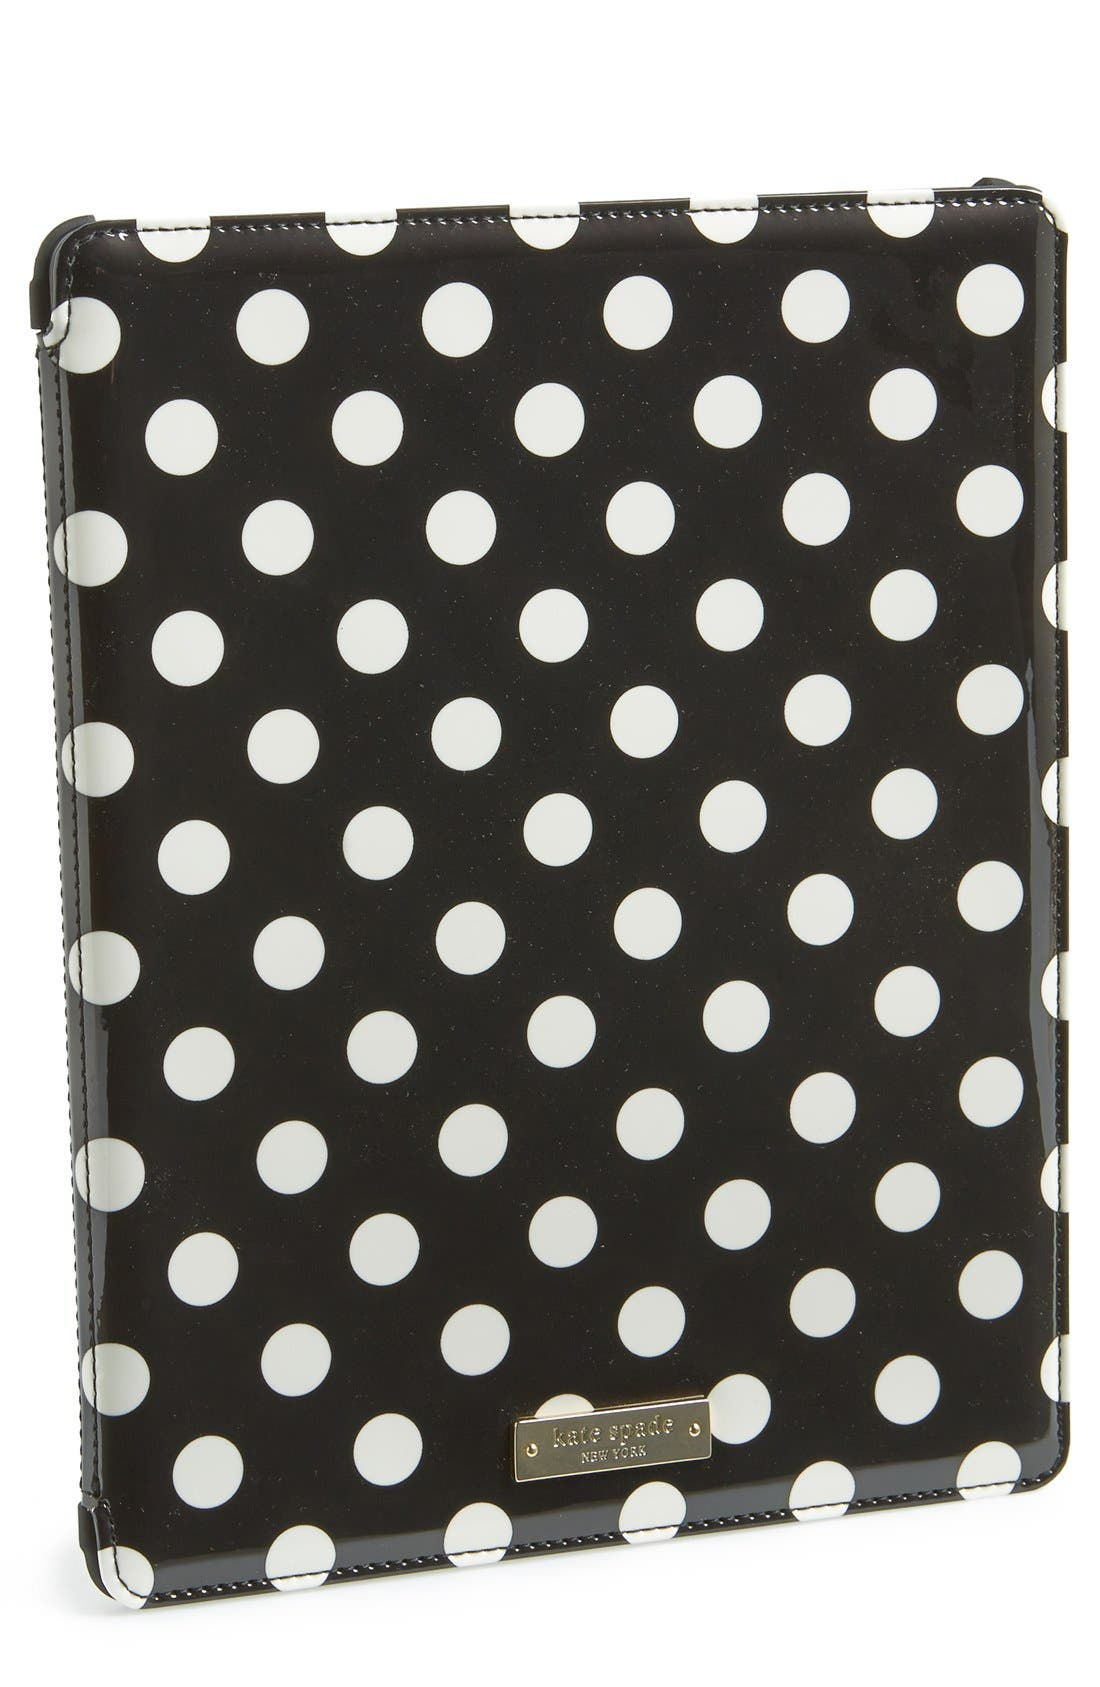 Main Image - kate spade new york 'la pavillion' iPad folio